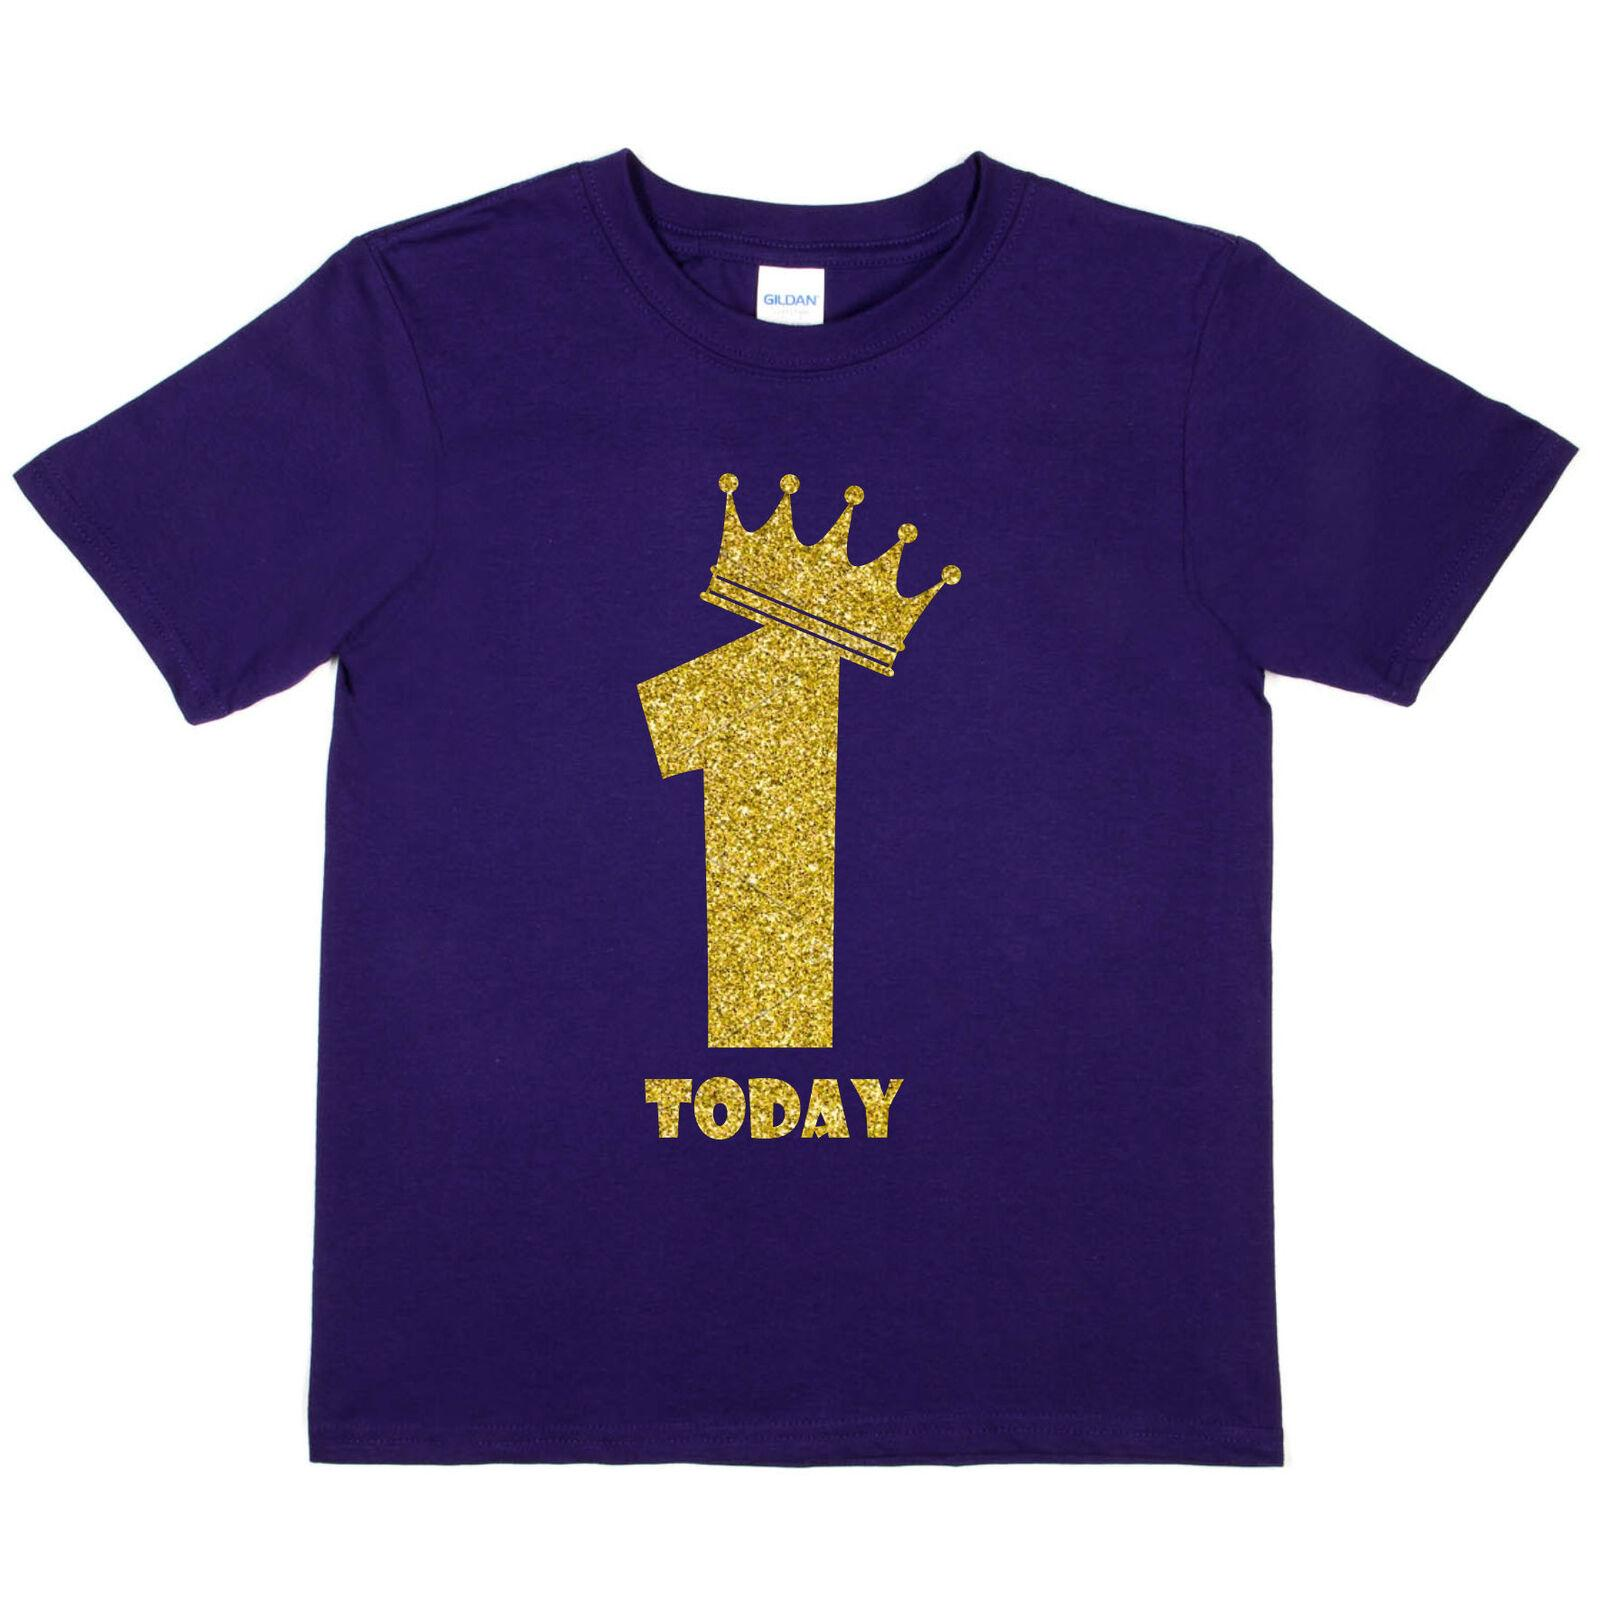 4e79e6e8ba Kids One Today Birthday T-shirt In Gold Glitter Happy 1st Birthday Gift  Funny free shipping Casual Tshirt